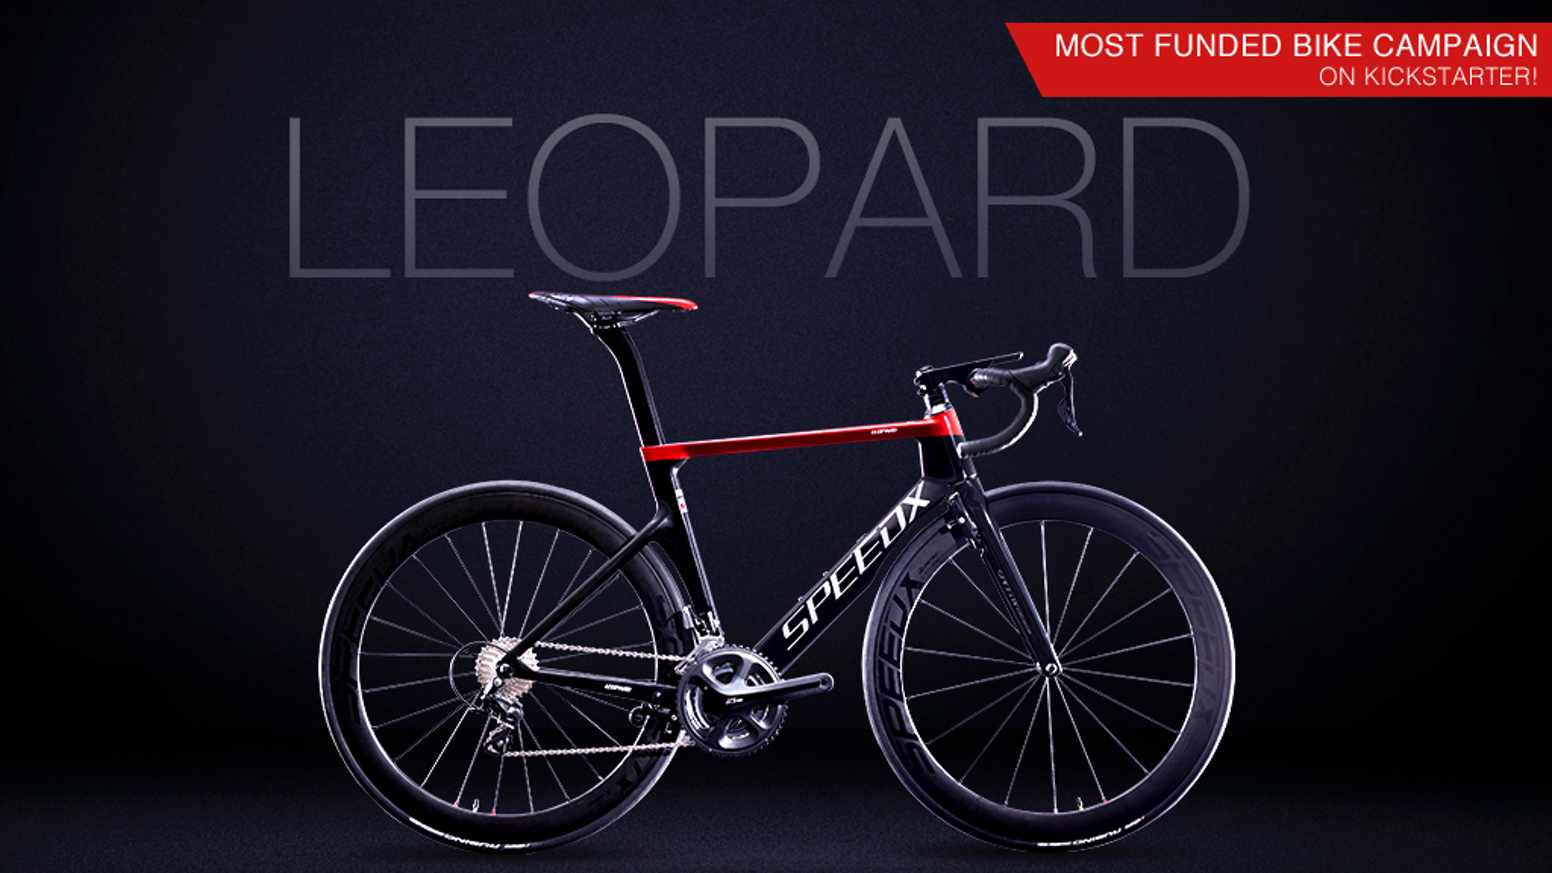 SpeedX Leopard is the only smart aero road bike with the ability to help you train and track your progress in real time.